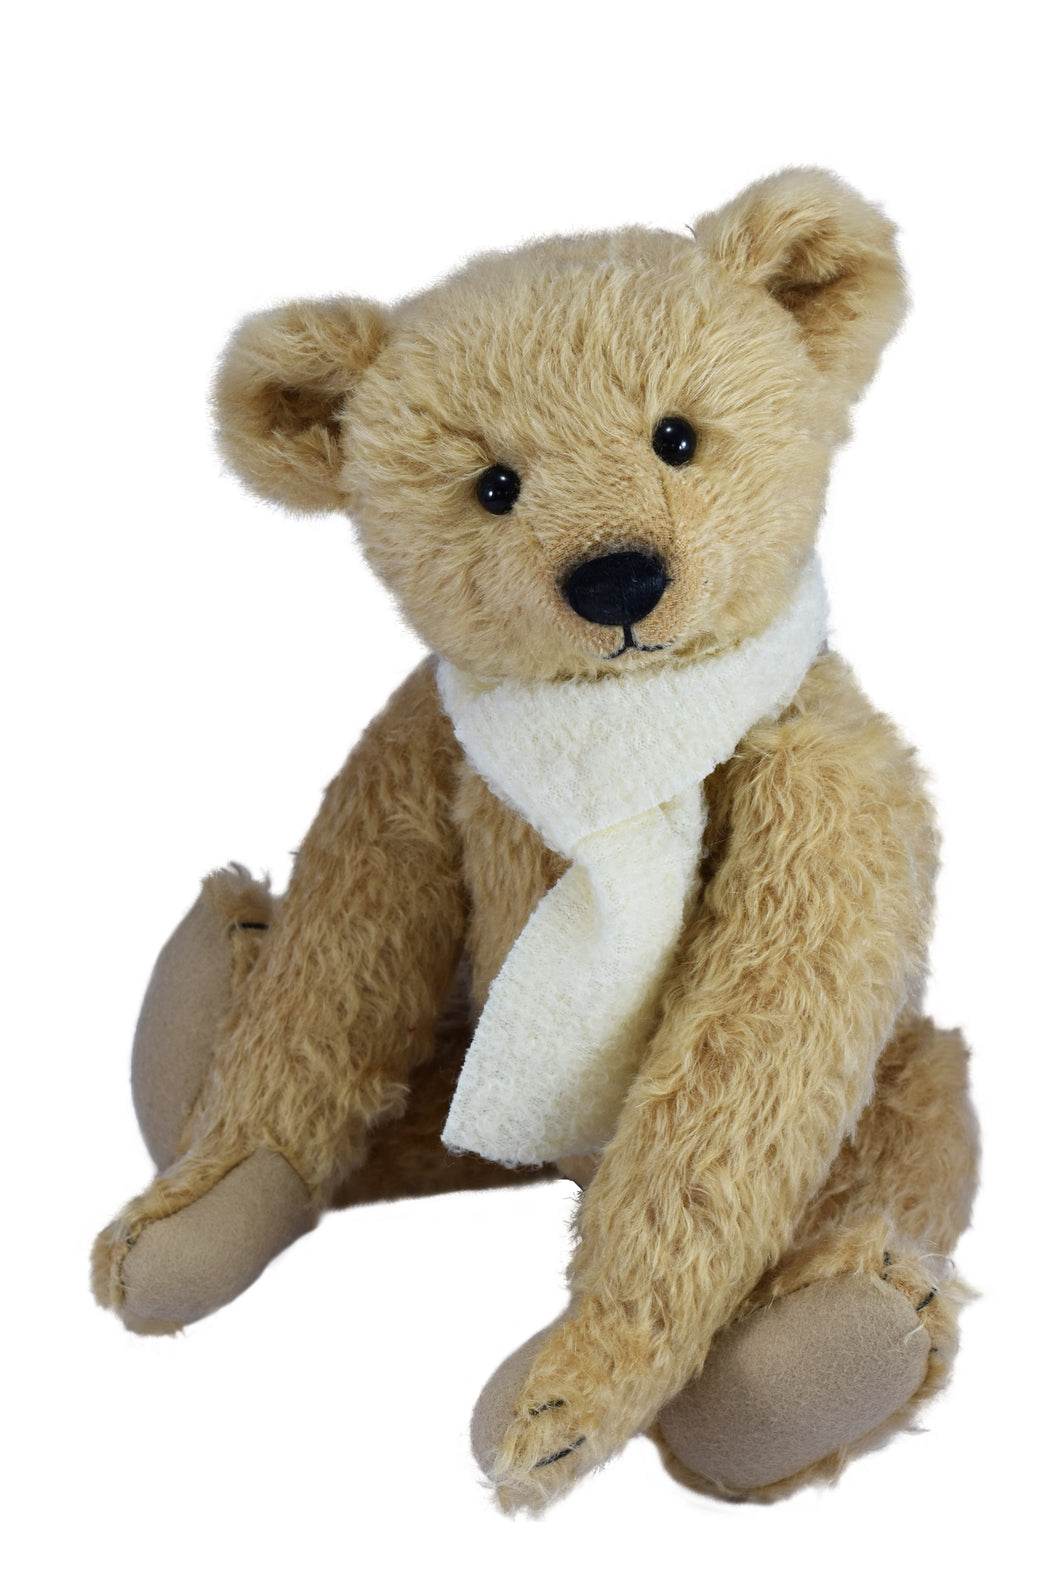 NEW: TEDDY WIDO / CLEMENS 72TH ANNIVERSARY MOHAIR LIMITED BEAR